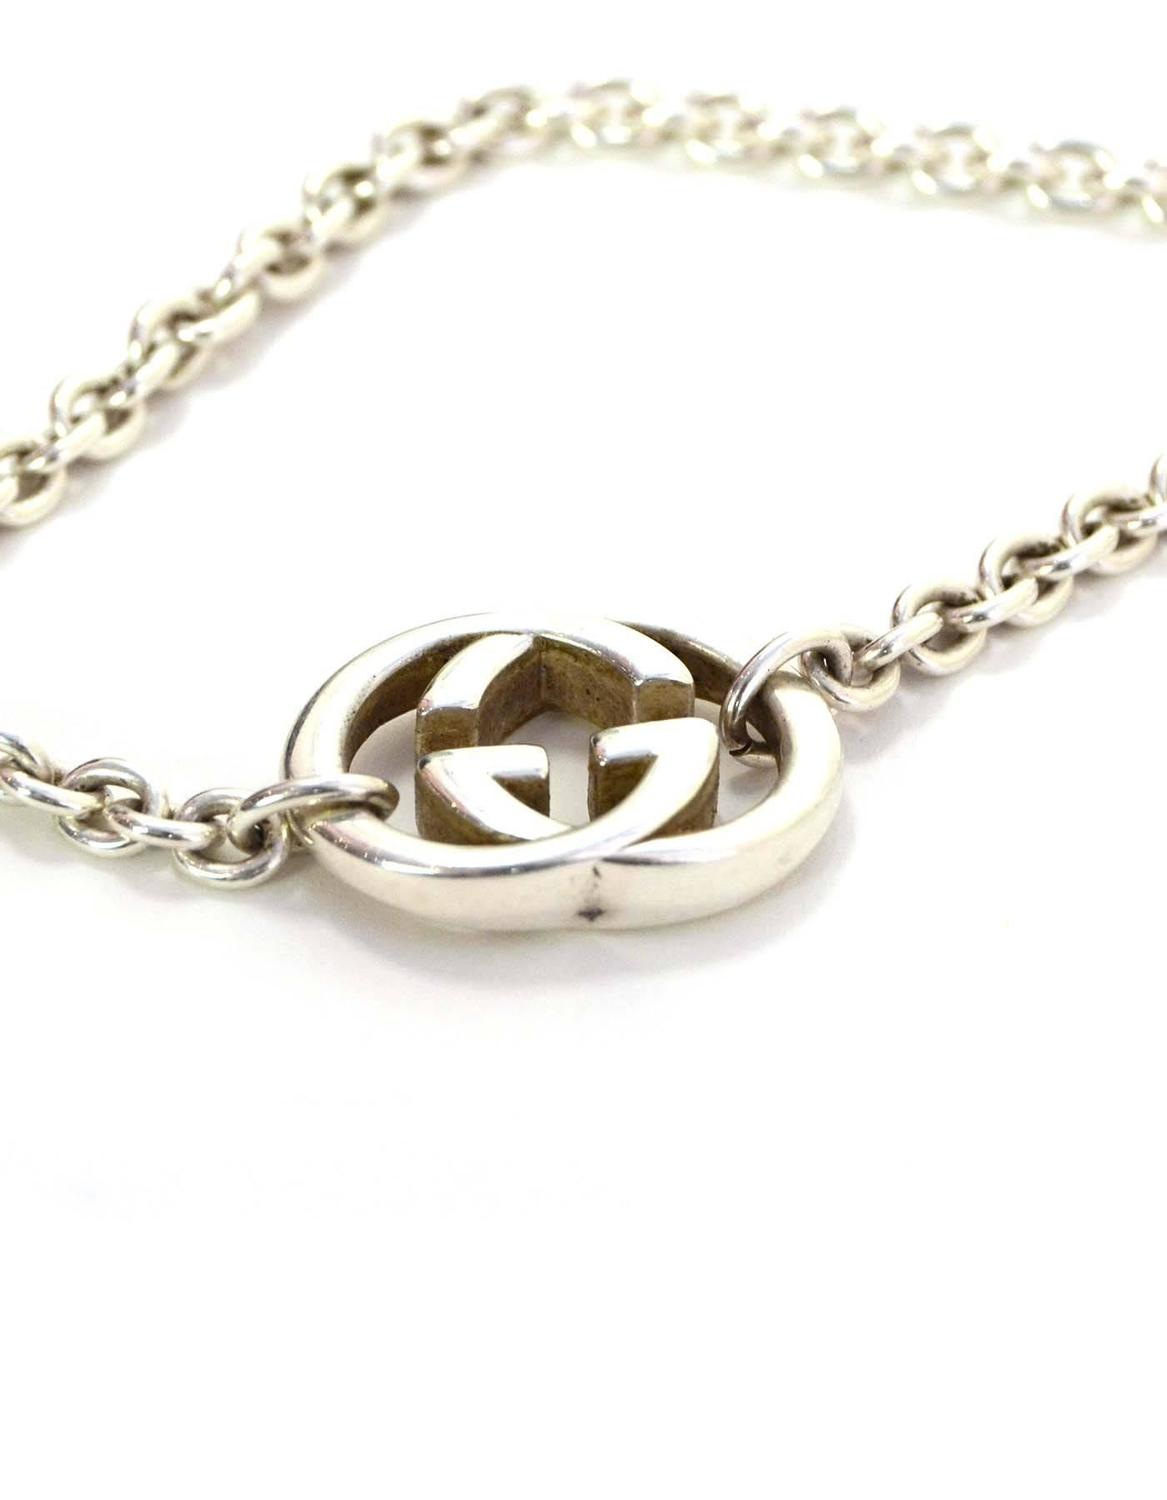 Gucci Sterling Silver Logo Chain Necklace For Sale at 1stdibs